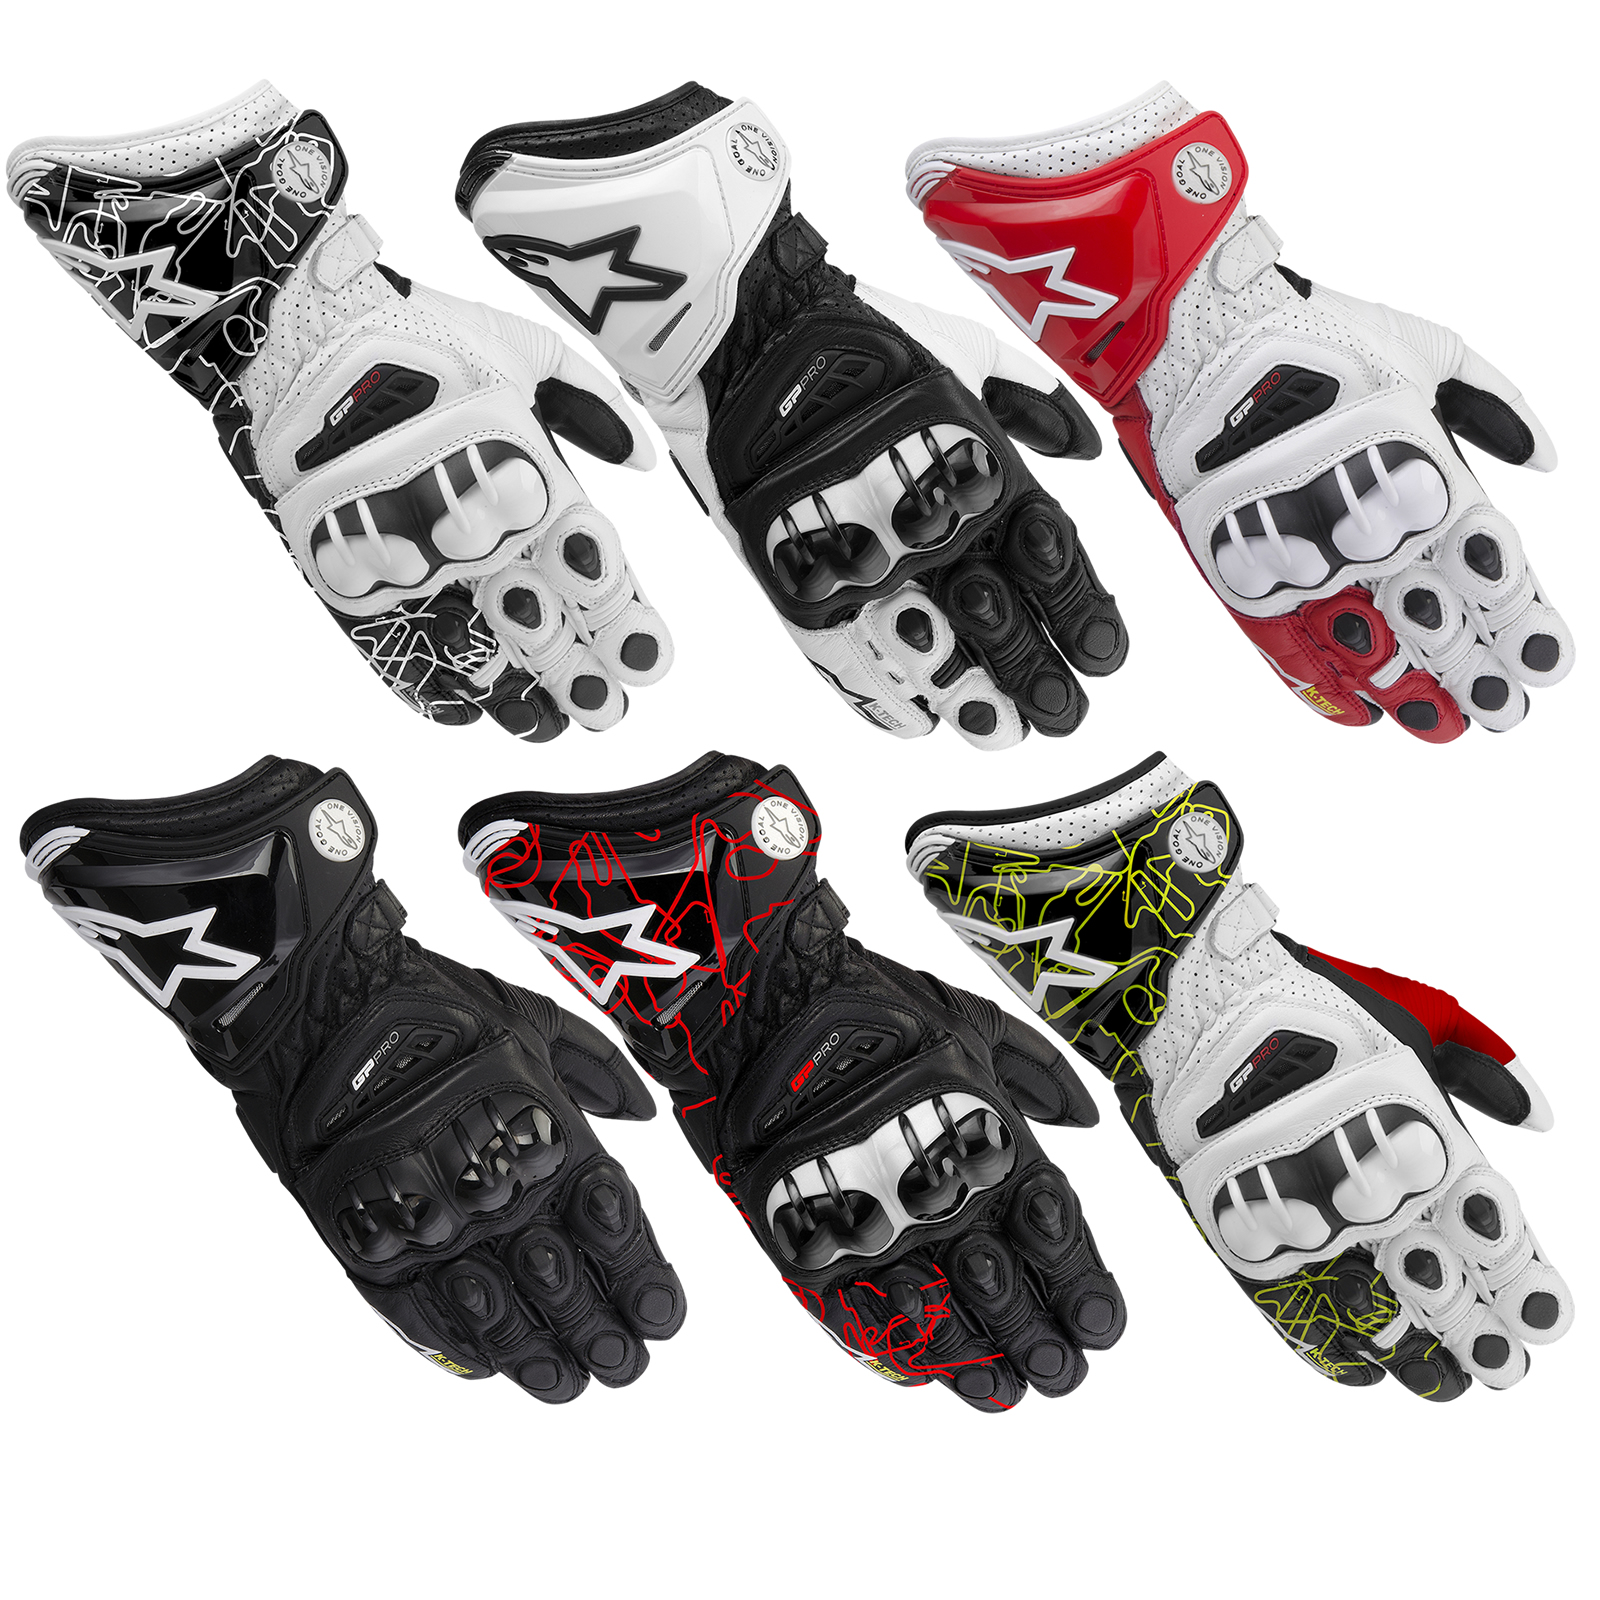 alpinestars 2013 gp pro motorcycle gloves gloves. Black Bedroom Furniture Sets. Home Design Ideas